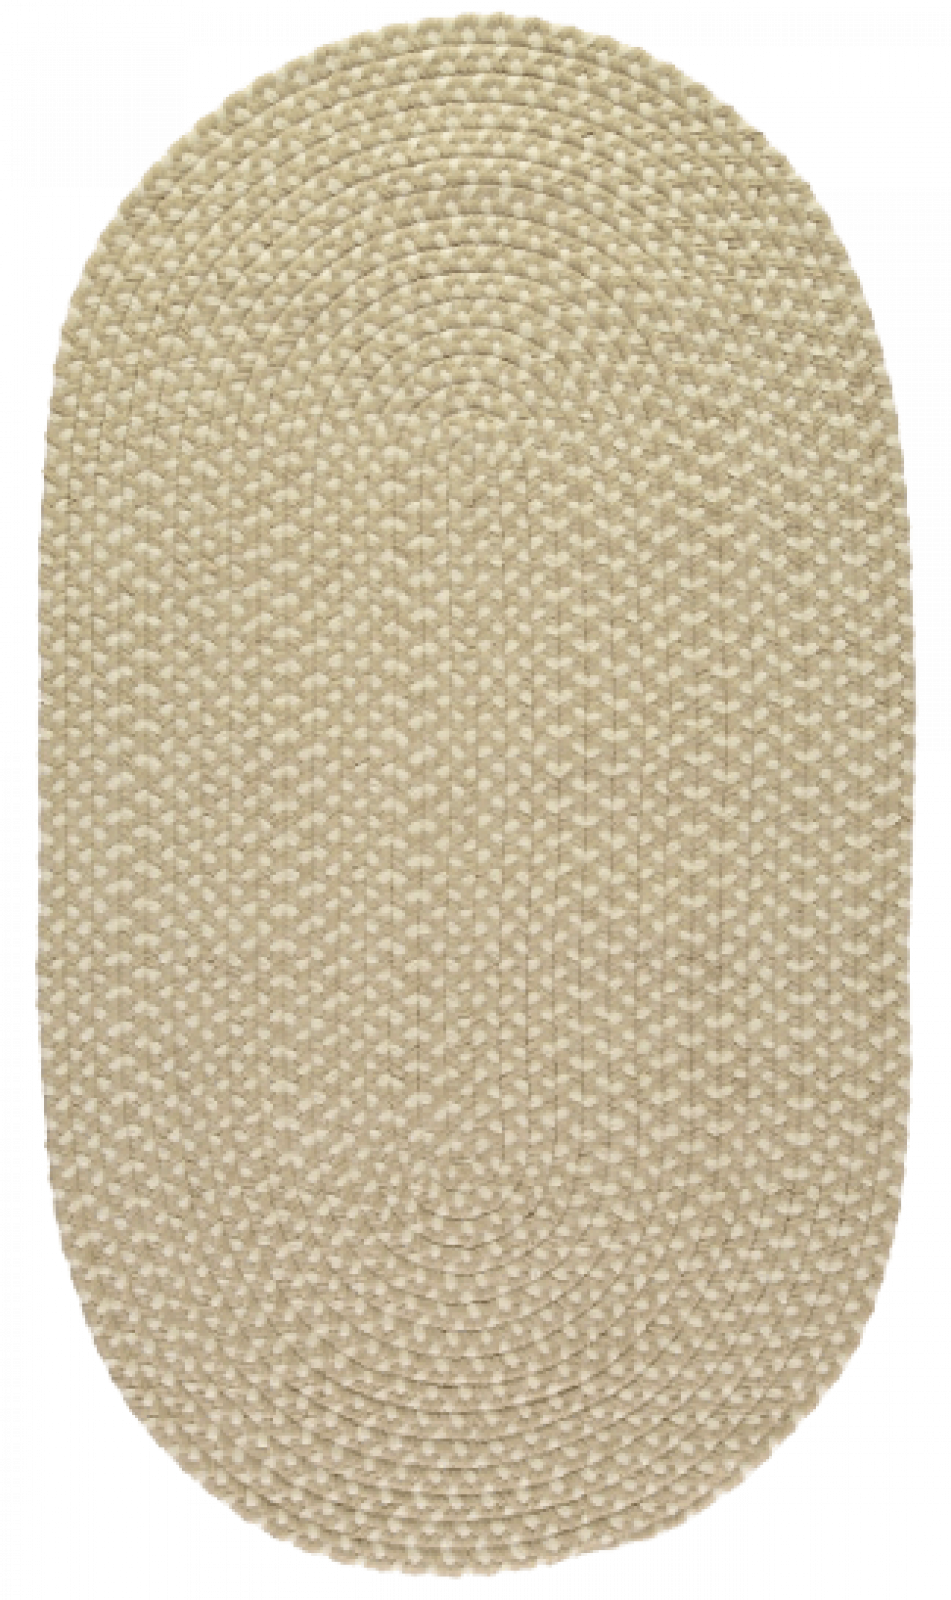 Putty Oval Braided Rug Recycled Plastic 61x91cm